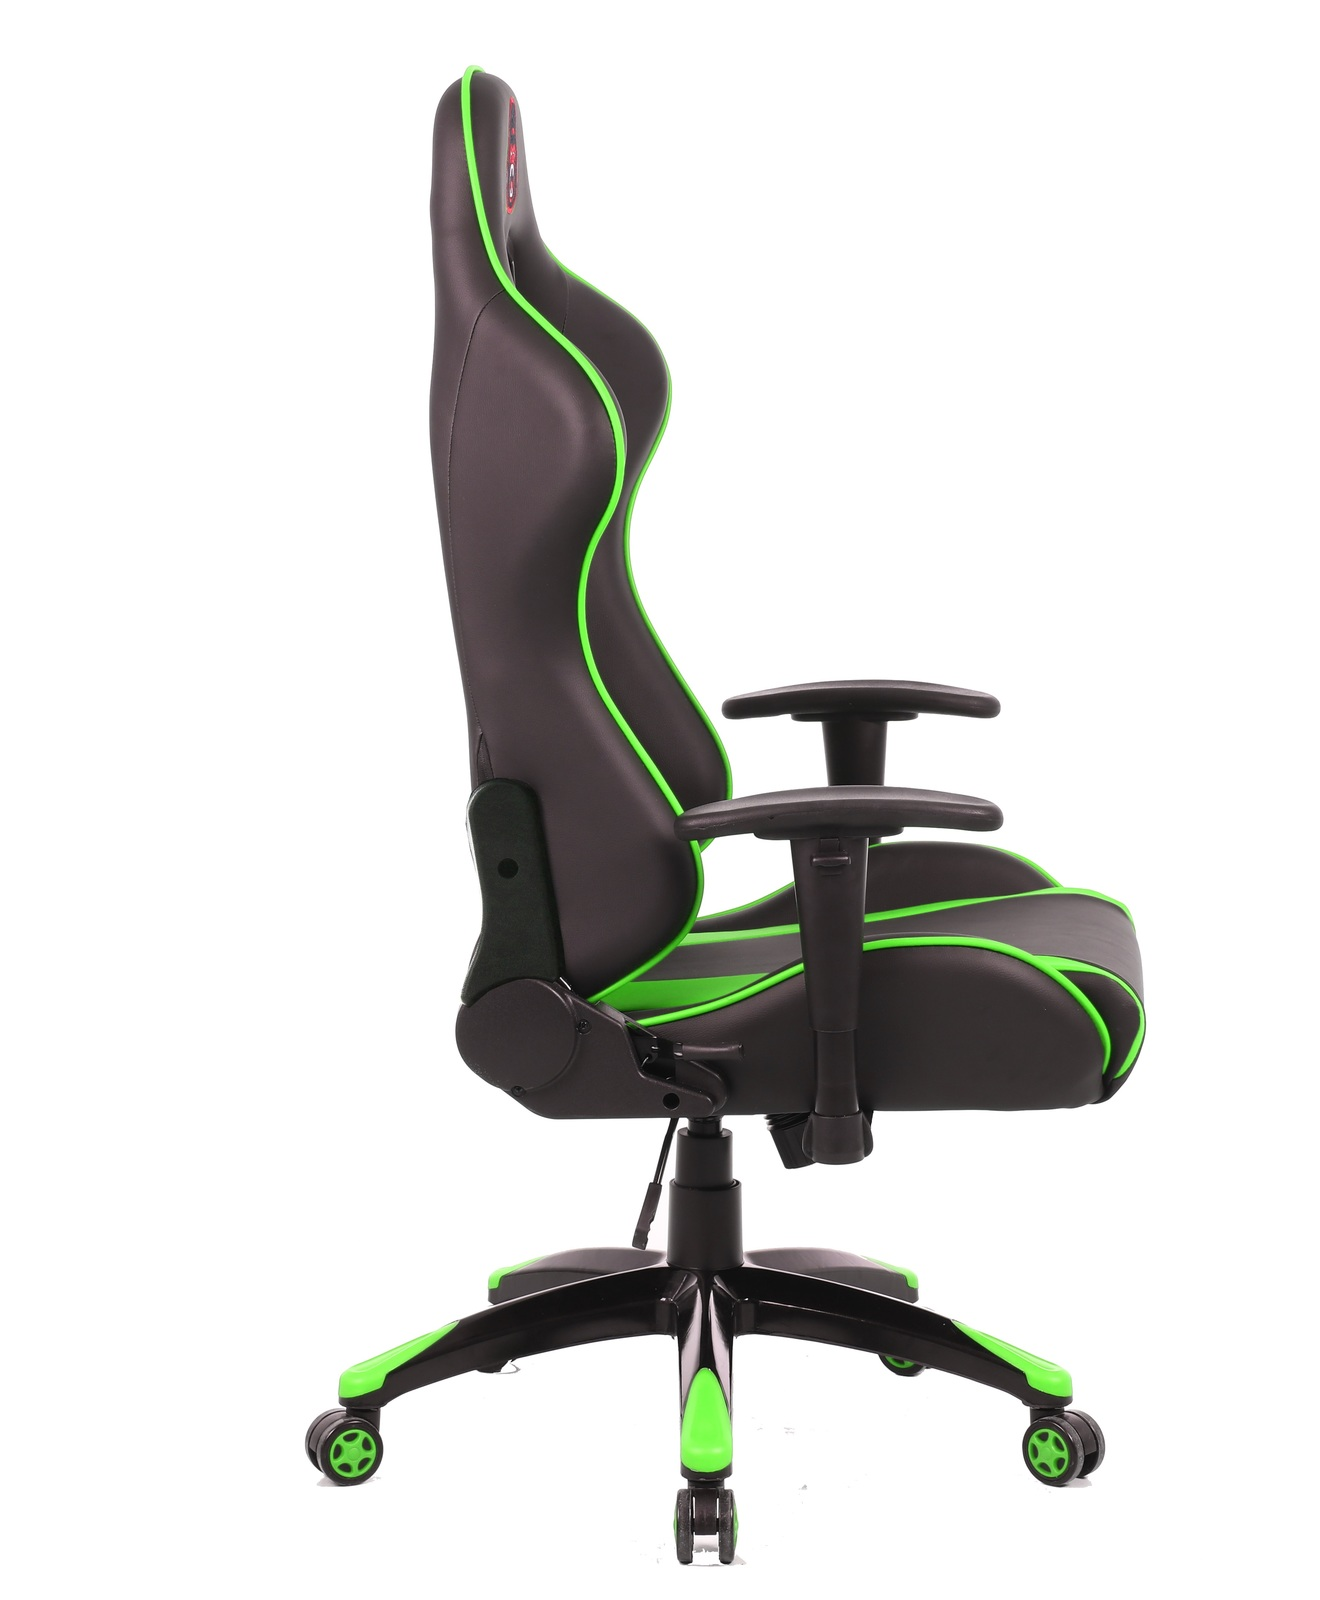 Gorilla Gaming Commander Chair - Green & Black for  image